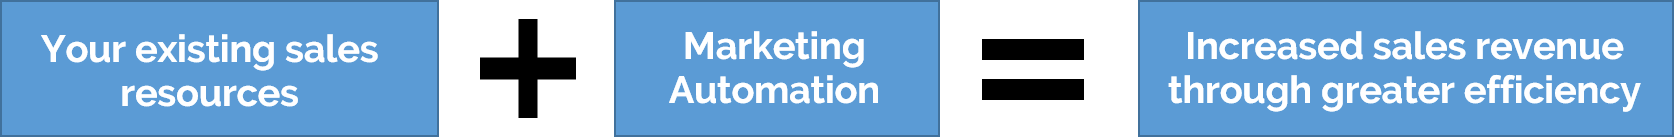 Marketing Automation Image.png